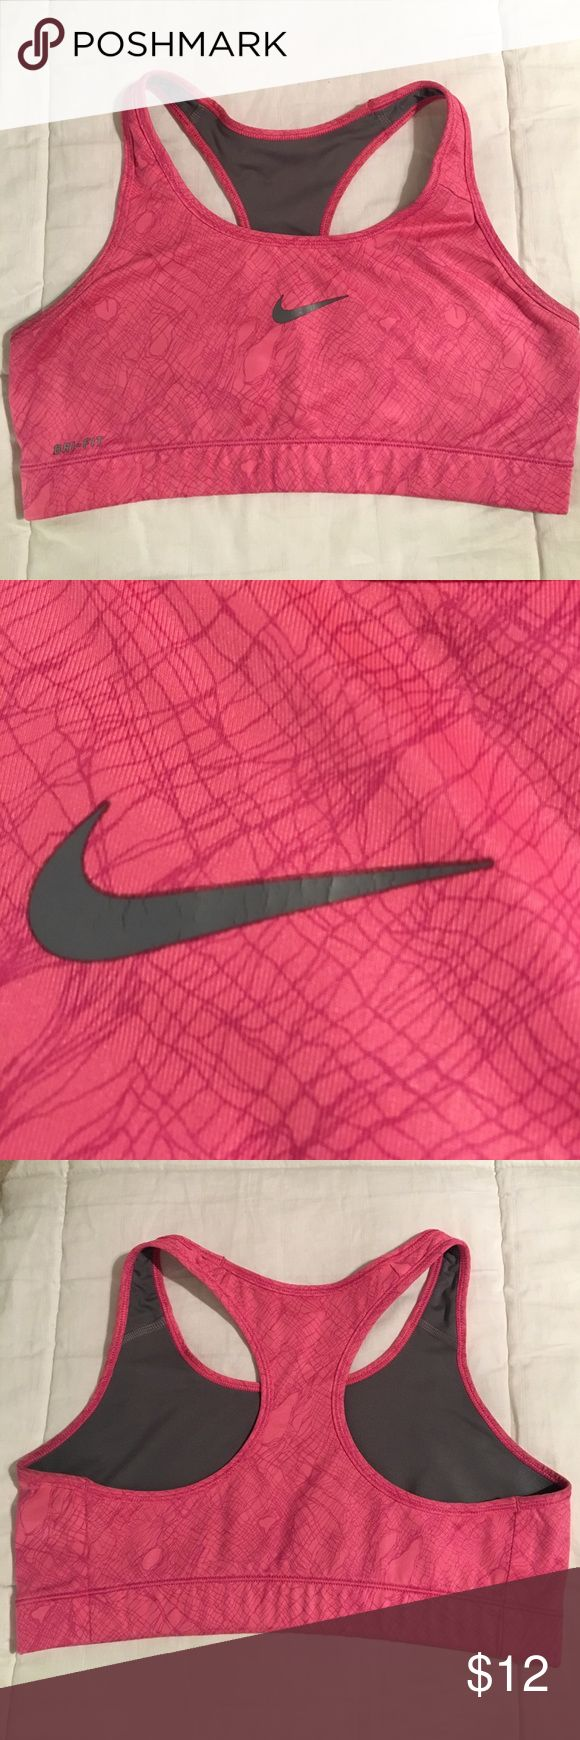 Nike hot pink and gray sports bra Cute hot pink and light gray pattern sports bra. Great condition. No rips or stains. Medium to high impact support Nike Intimates & Sleepwear Bras